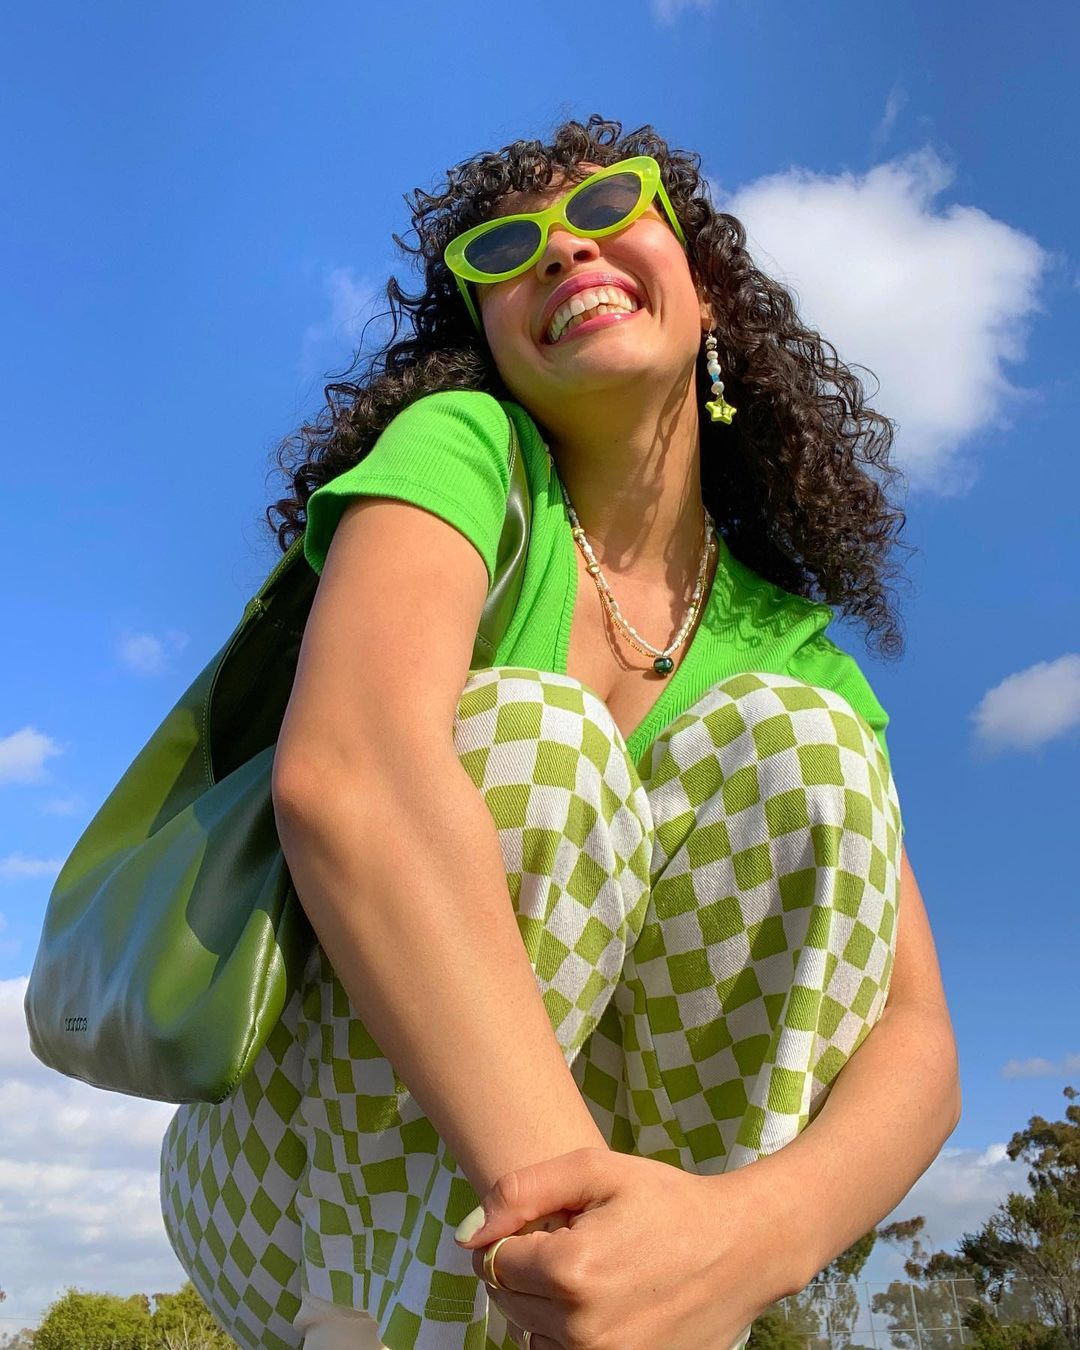 Jazmine Rogers wears green rectangle sunglasses, neon green t-shirt, checkerboard jeans and a green bag and smiles at the camera with blue skies in the background